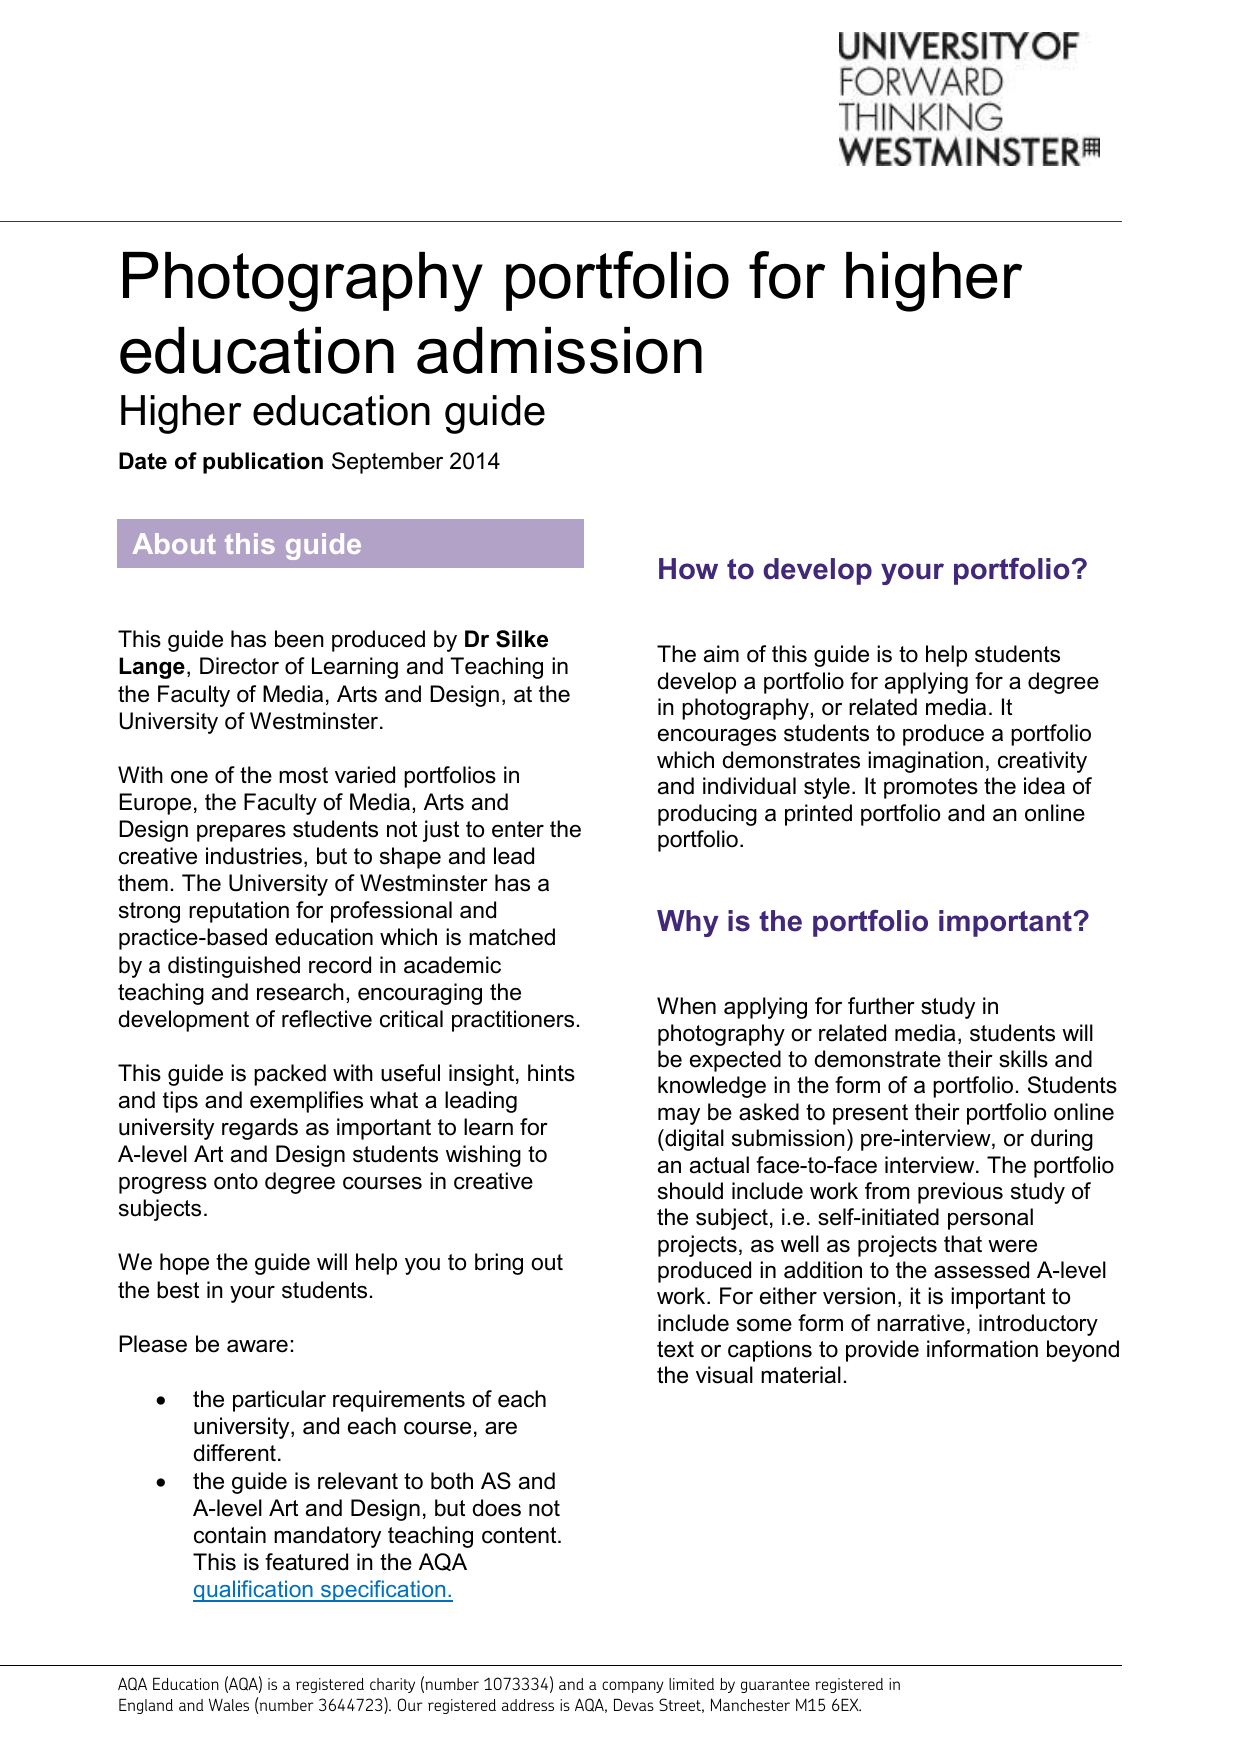 Photography portfolio for higher education admission